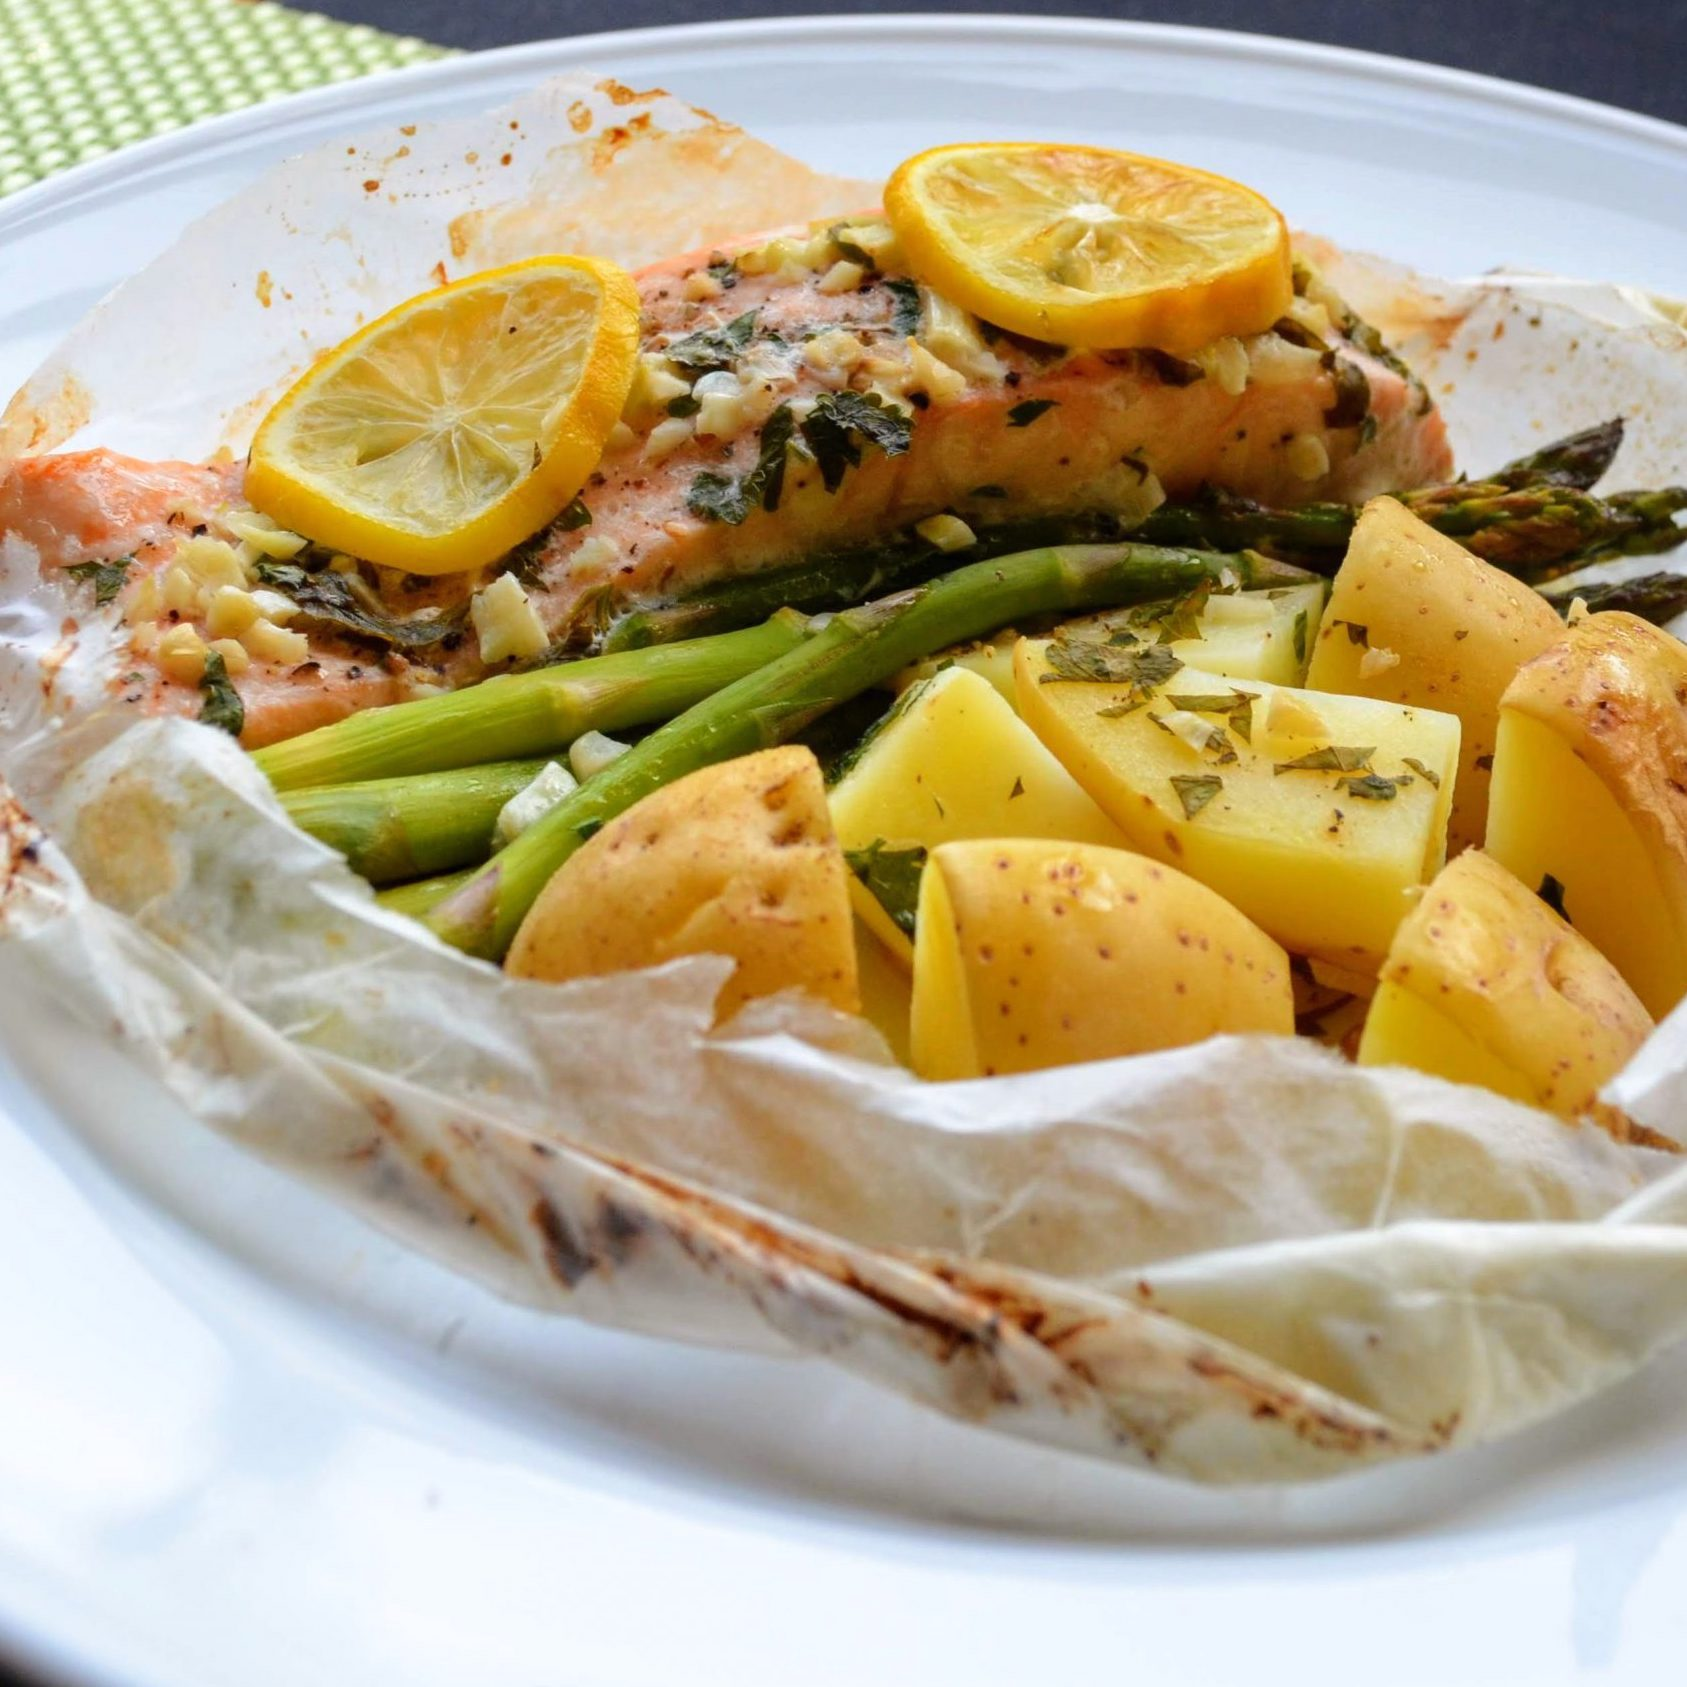 salmon, potatoes, and asparagus in parchment paper on a white plate